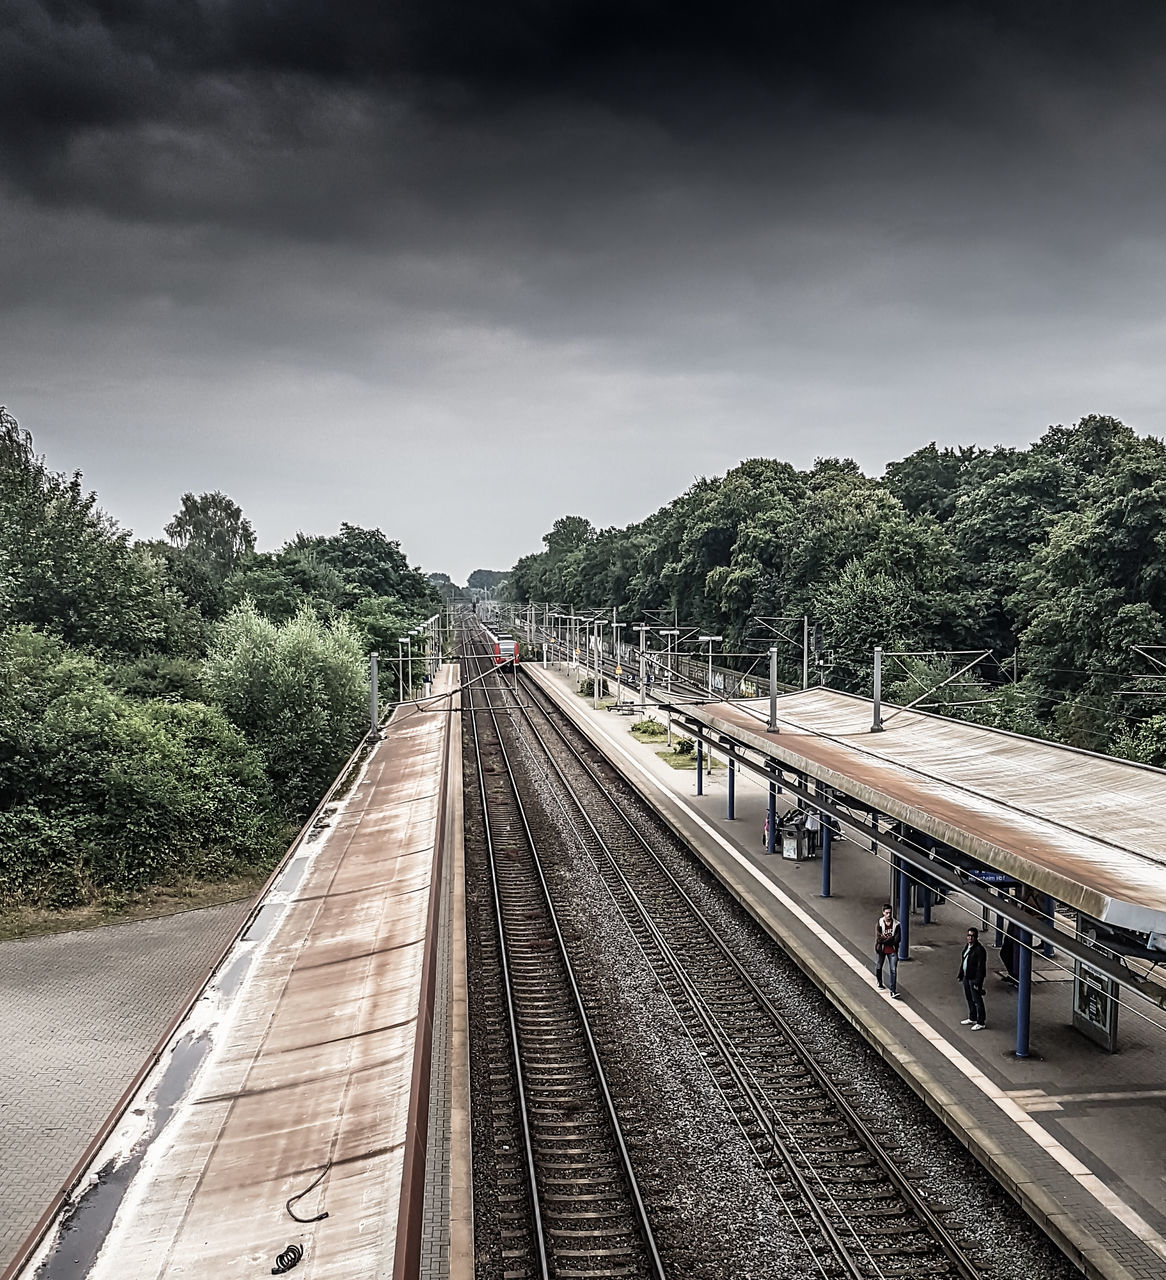 railroad track, transportation, rail transportation, tree, sky, railway track, the way forward, day, public transportation, high angle view, outdoors, track, cloud - sky, no people, nature